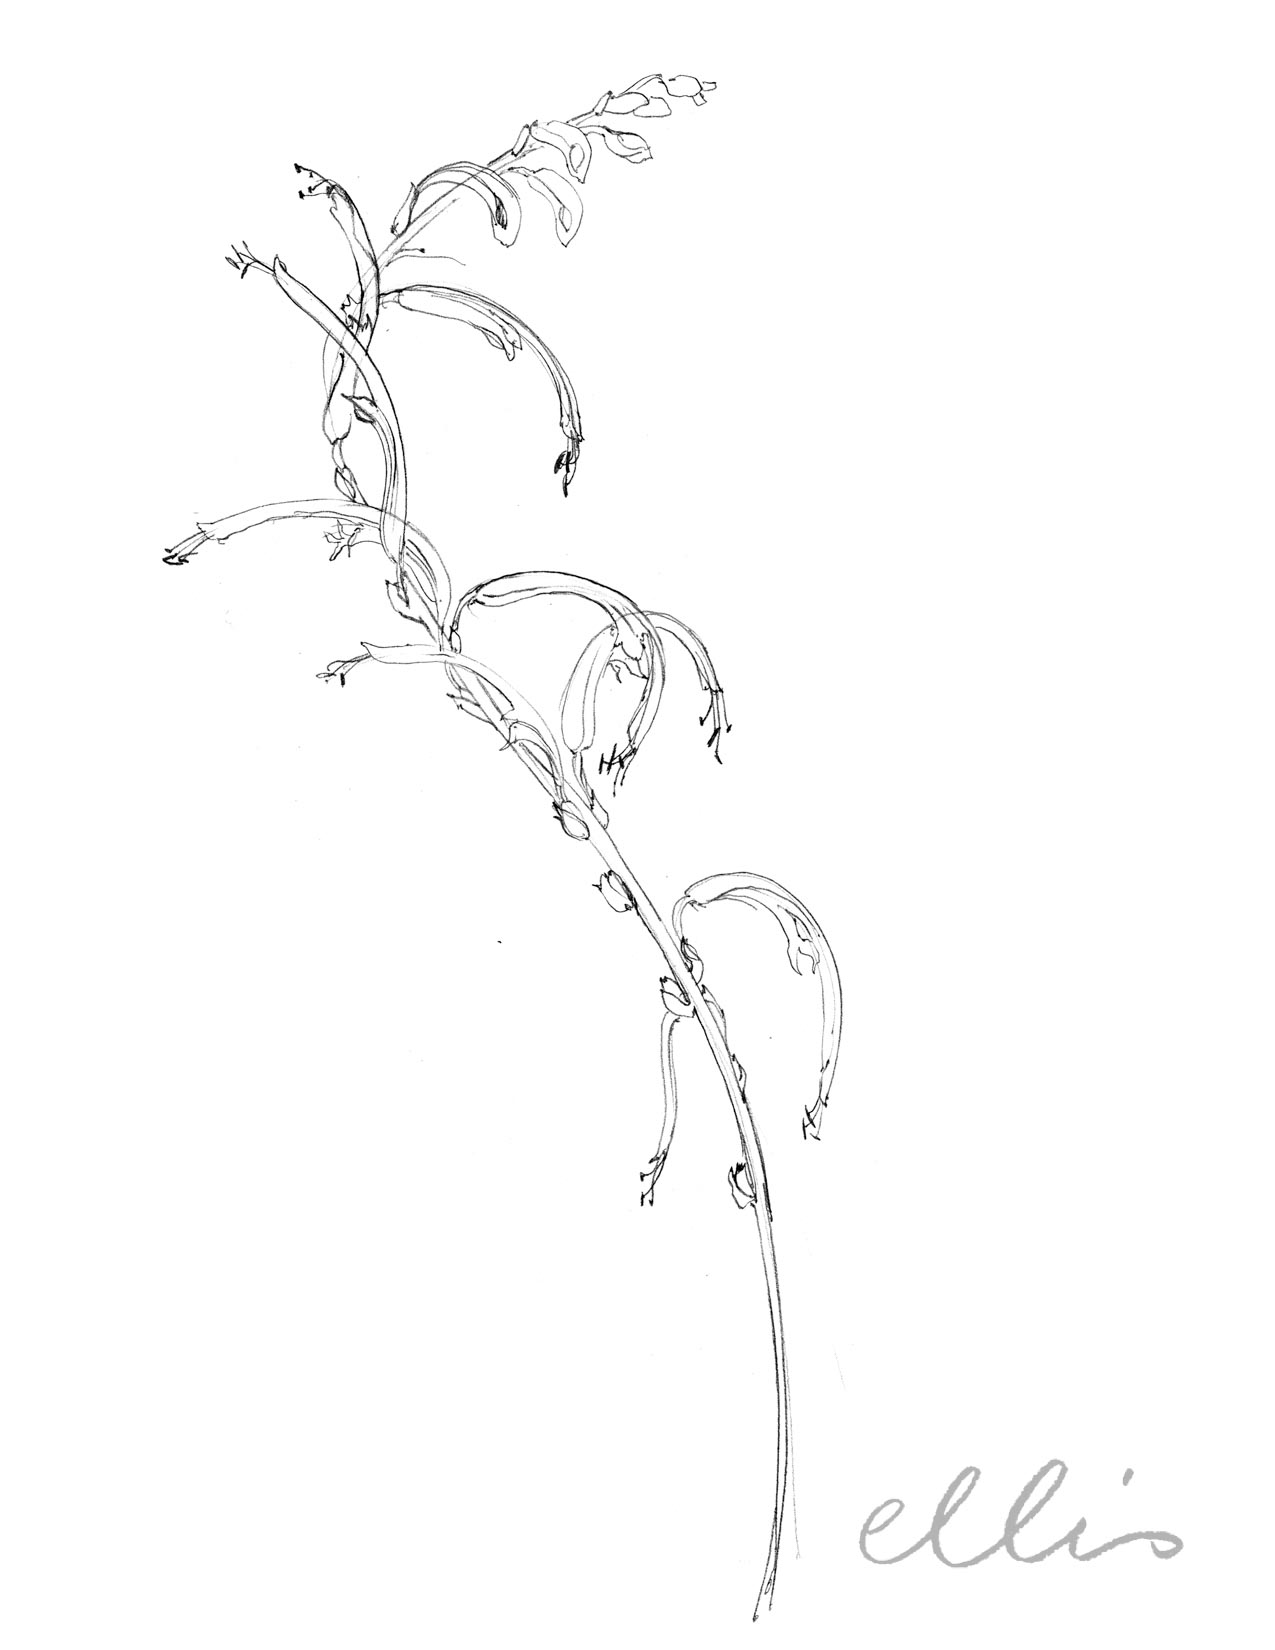 Erin Ellis_100 days project botanical drawings_2013-80.jpg